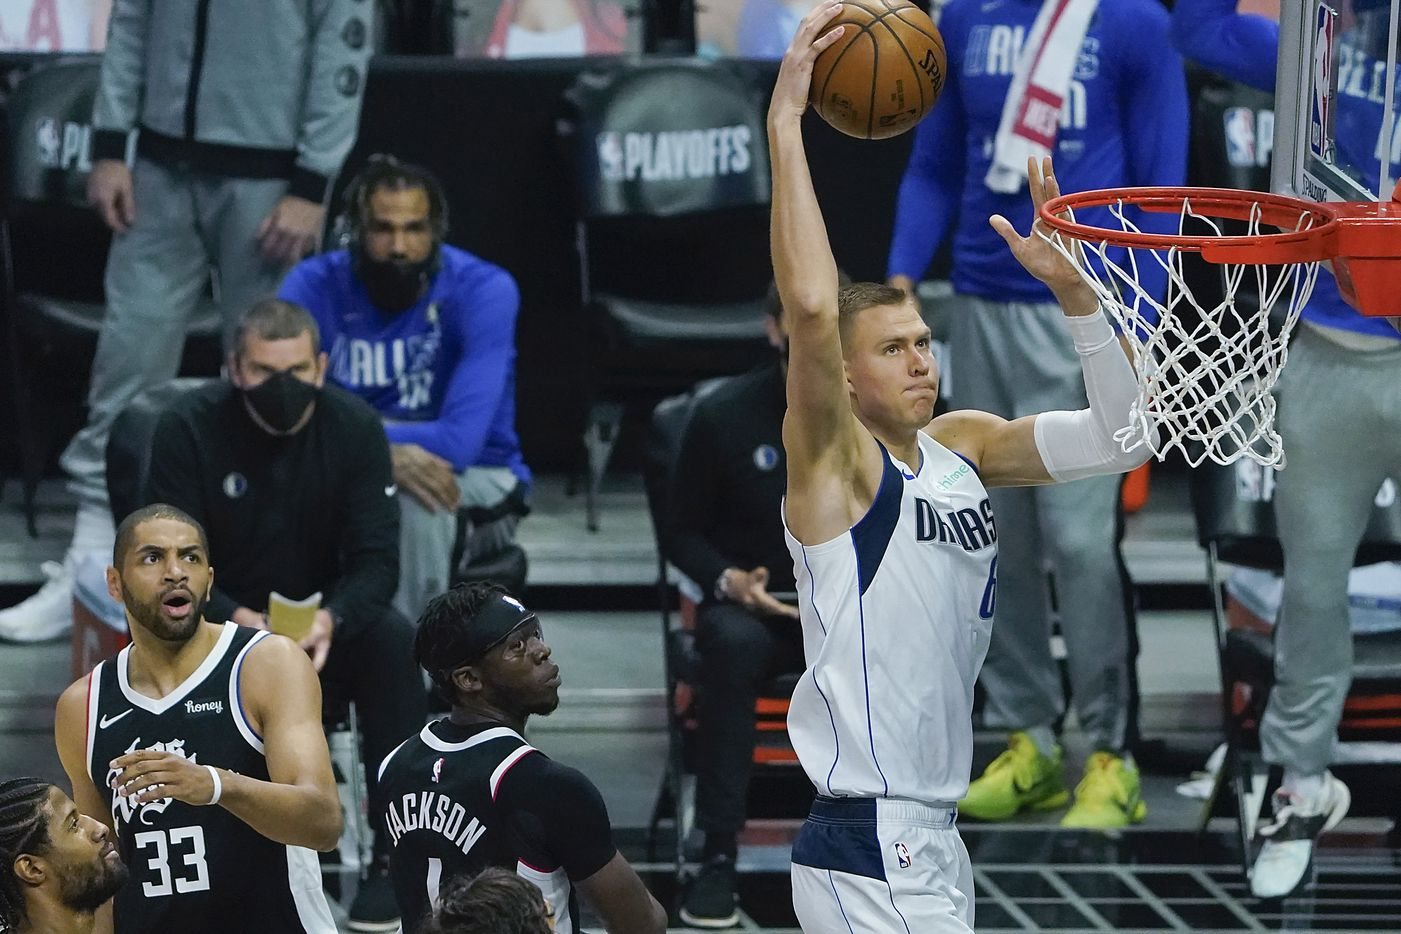 Dallas Mavericks center Kristaps Porzingis (6) goes up for a dunk past LA Clippers guard Reggie Jackson (1) and forward Nicolas Batum (33) during the first quarter an NBA playoff basketball game at the Staples Center on Wednesday, June 2, 2021, in Los Angeles.  (Smiley N. Pool/The Dallas Morning News)